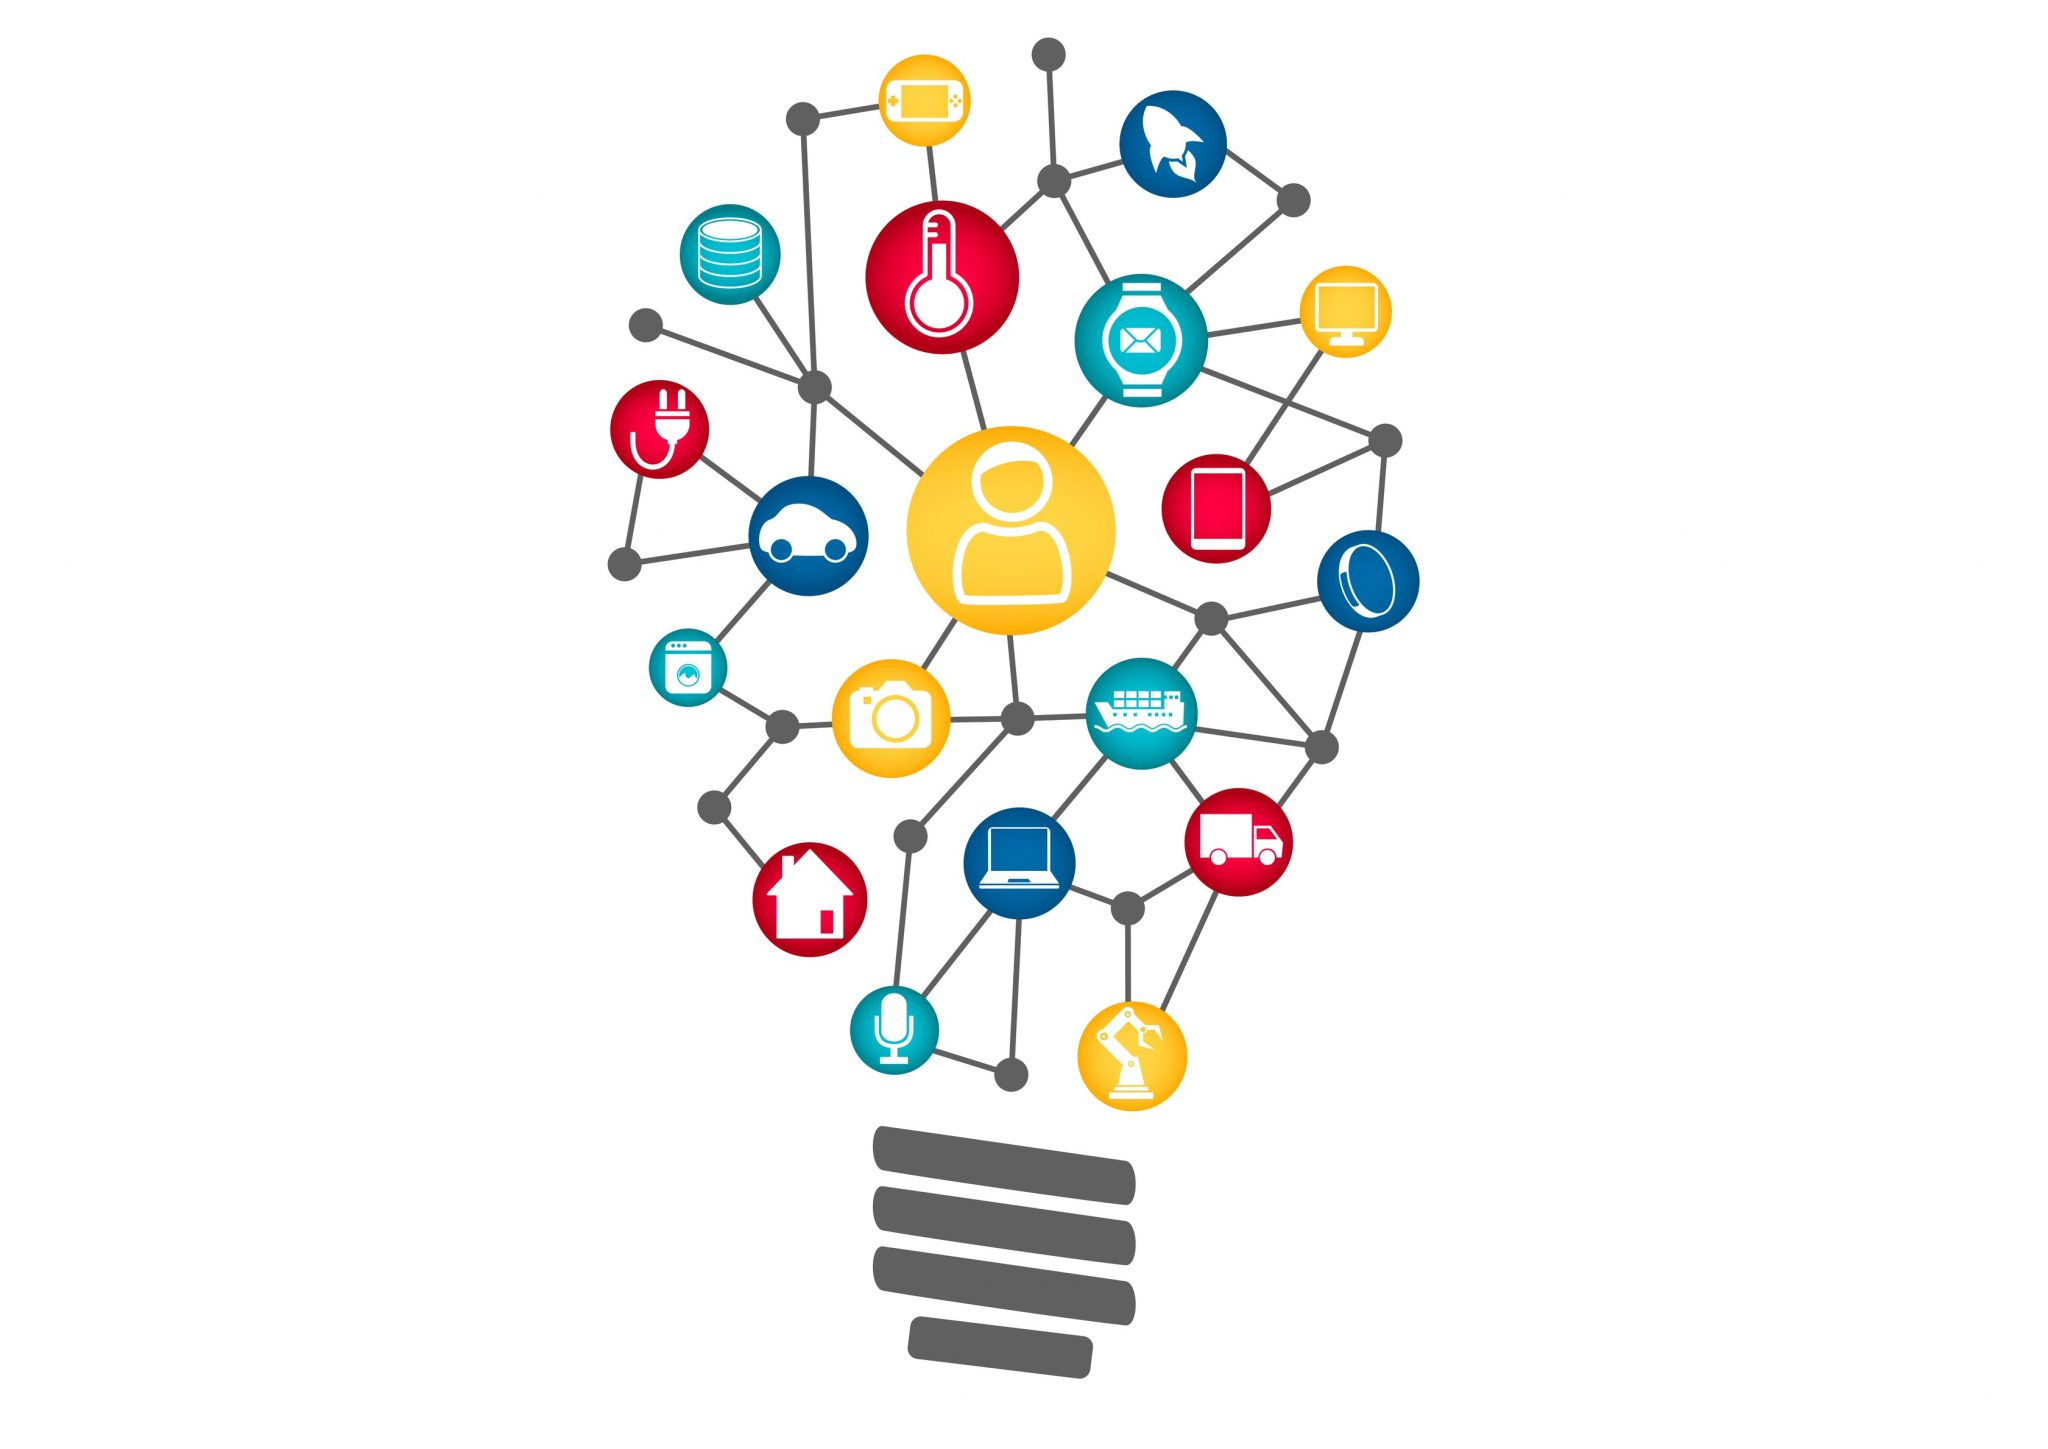 Light bulb with learning images